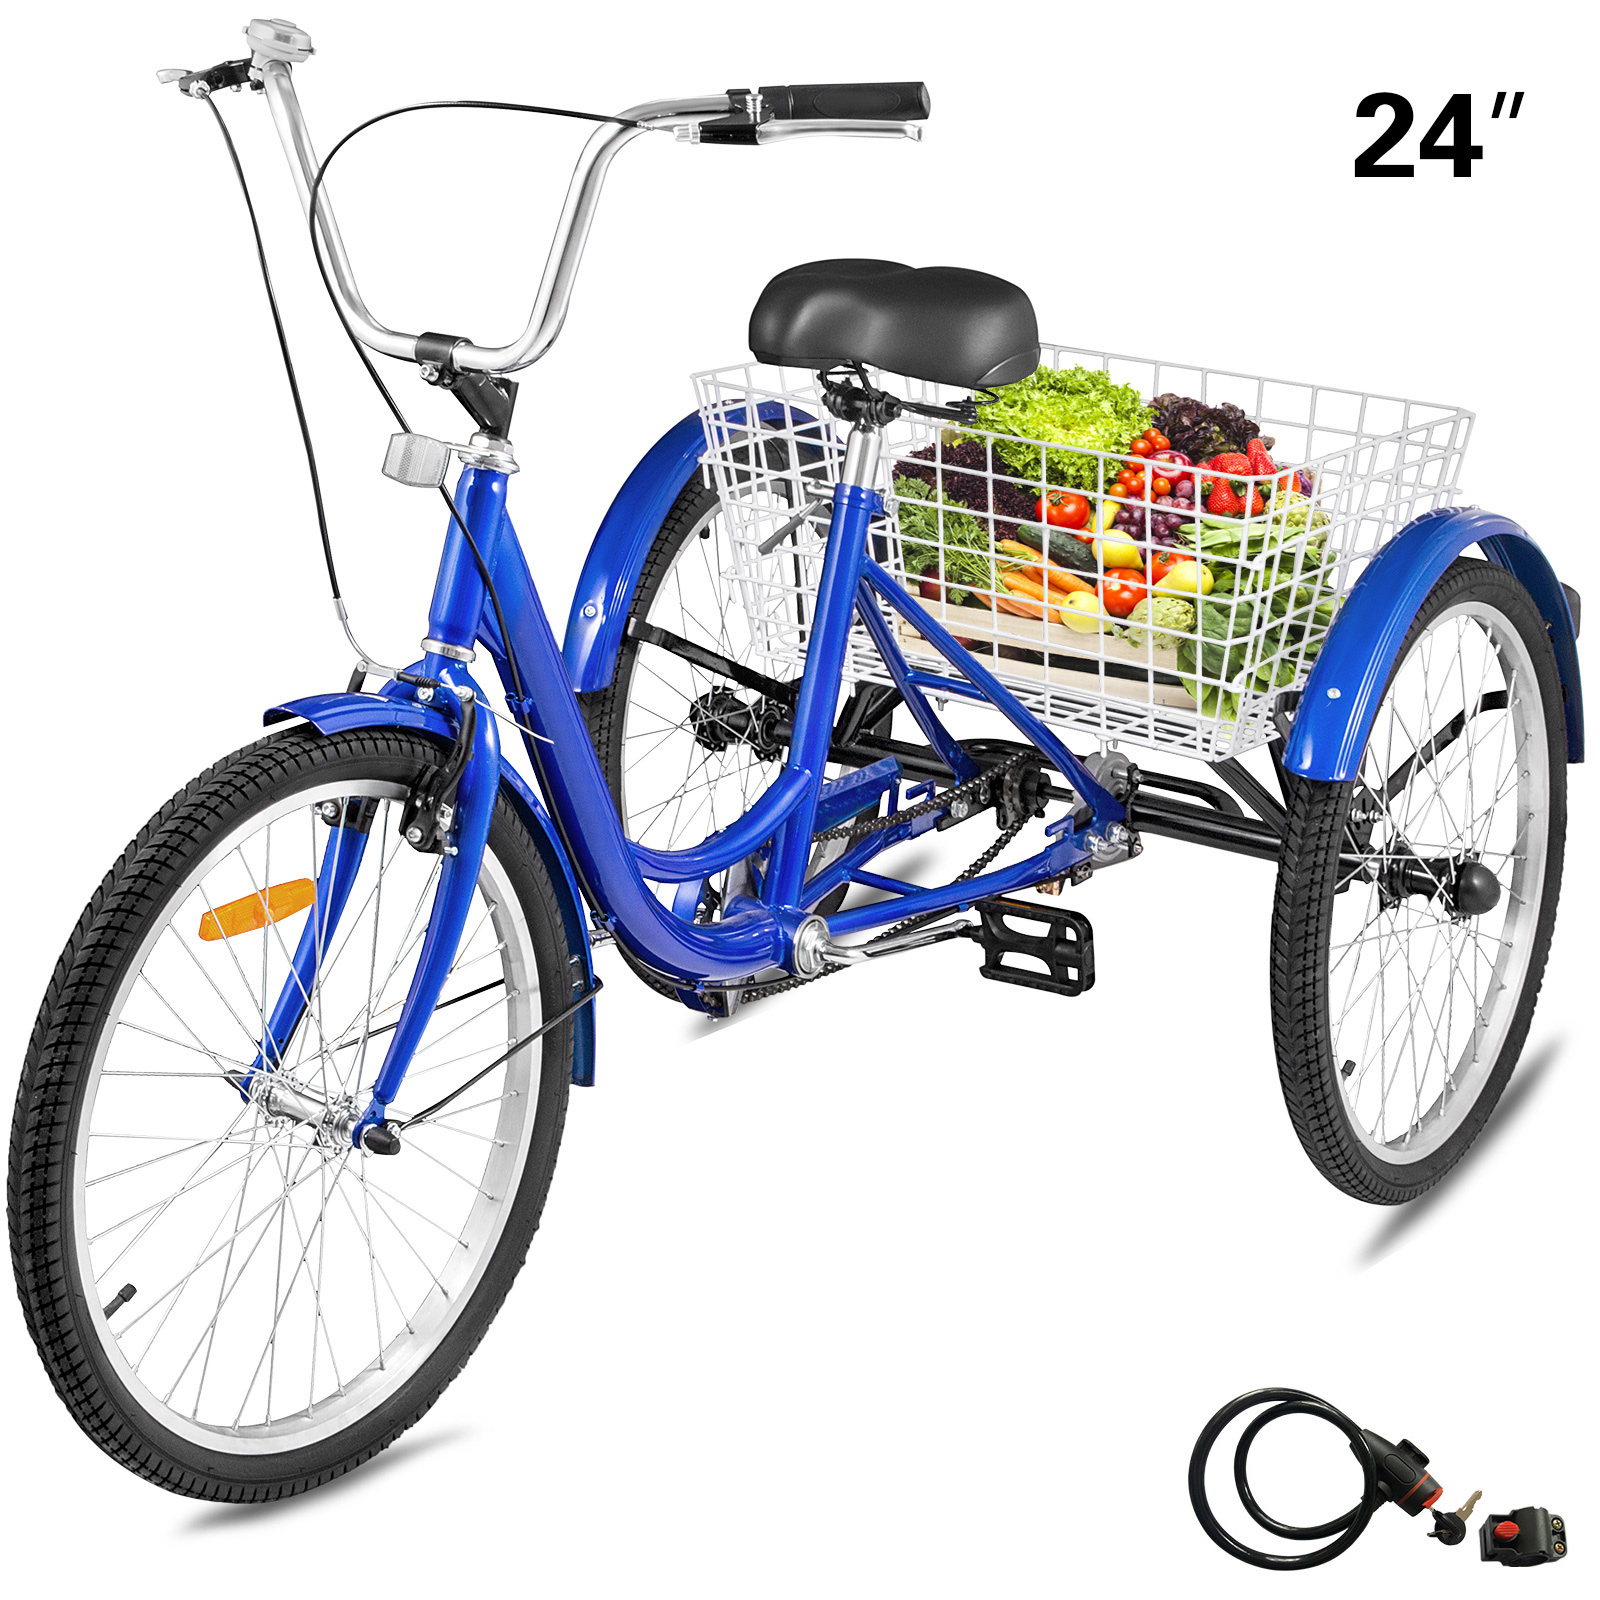 "24/"" 3 Wheels 6 gears adults Tricycle bicycle loads Bicycle Tricycle /& Light"